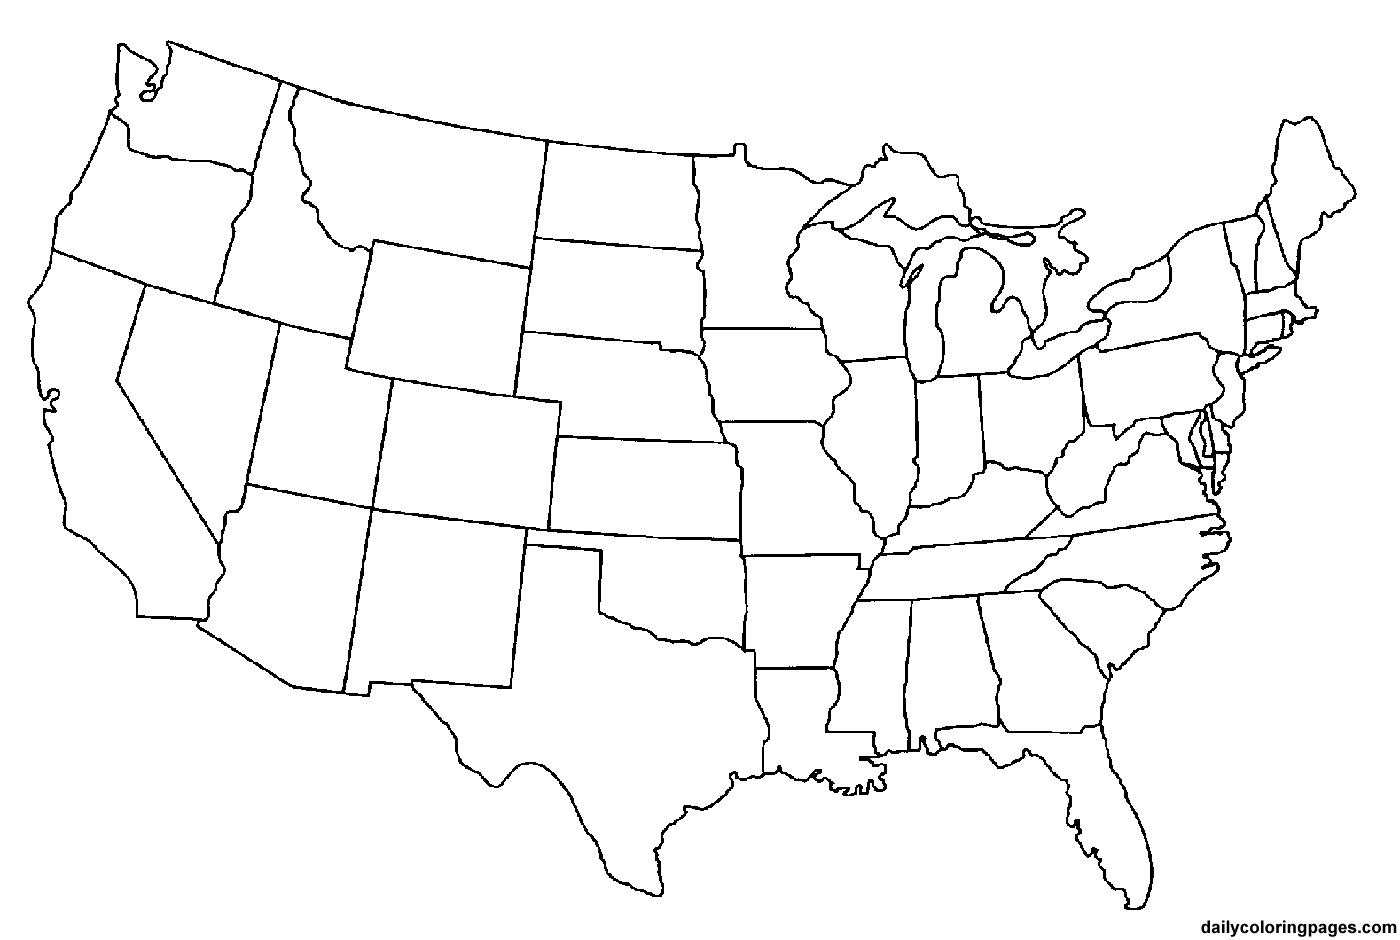 Systematic Transparent Background Us Map Png Usa Outline Clipart Us.